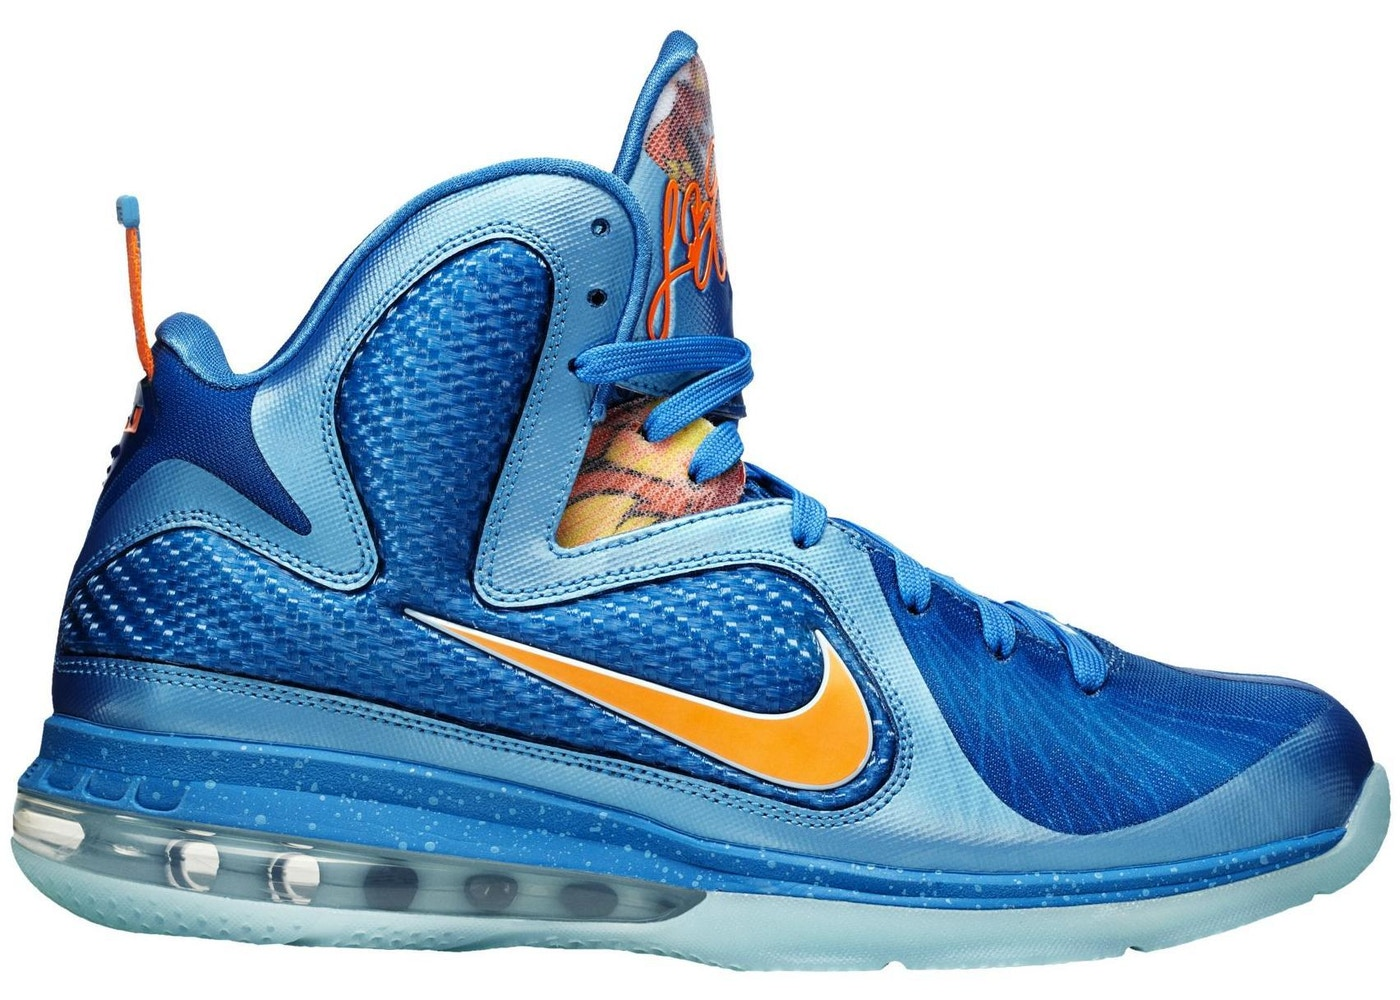 los angeles fce6a bfc5b Nike LeBron 9 Shoes - Average Sale Price